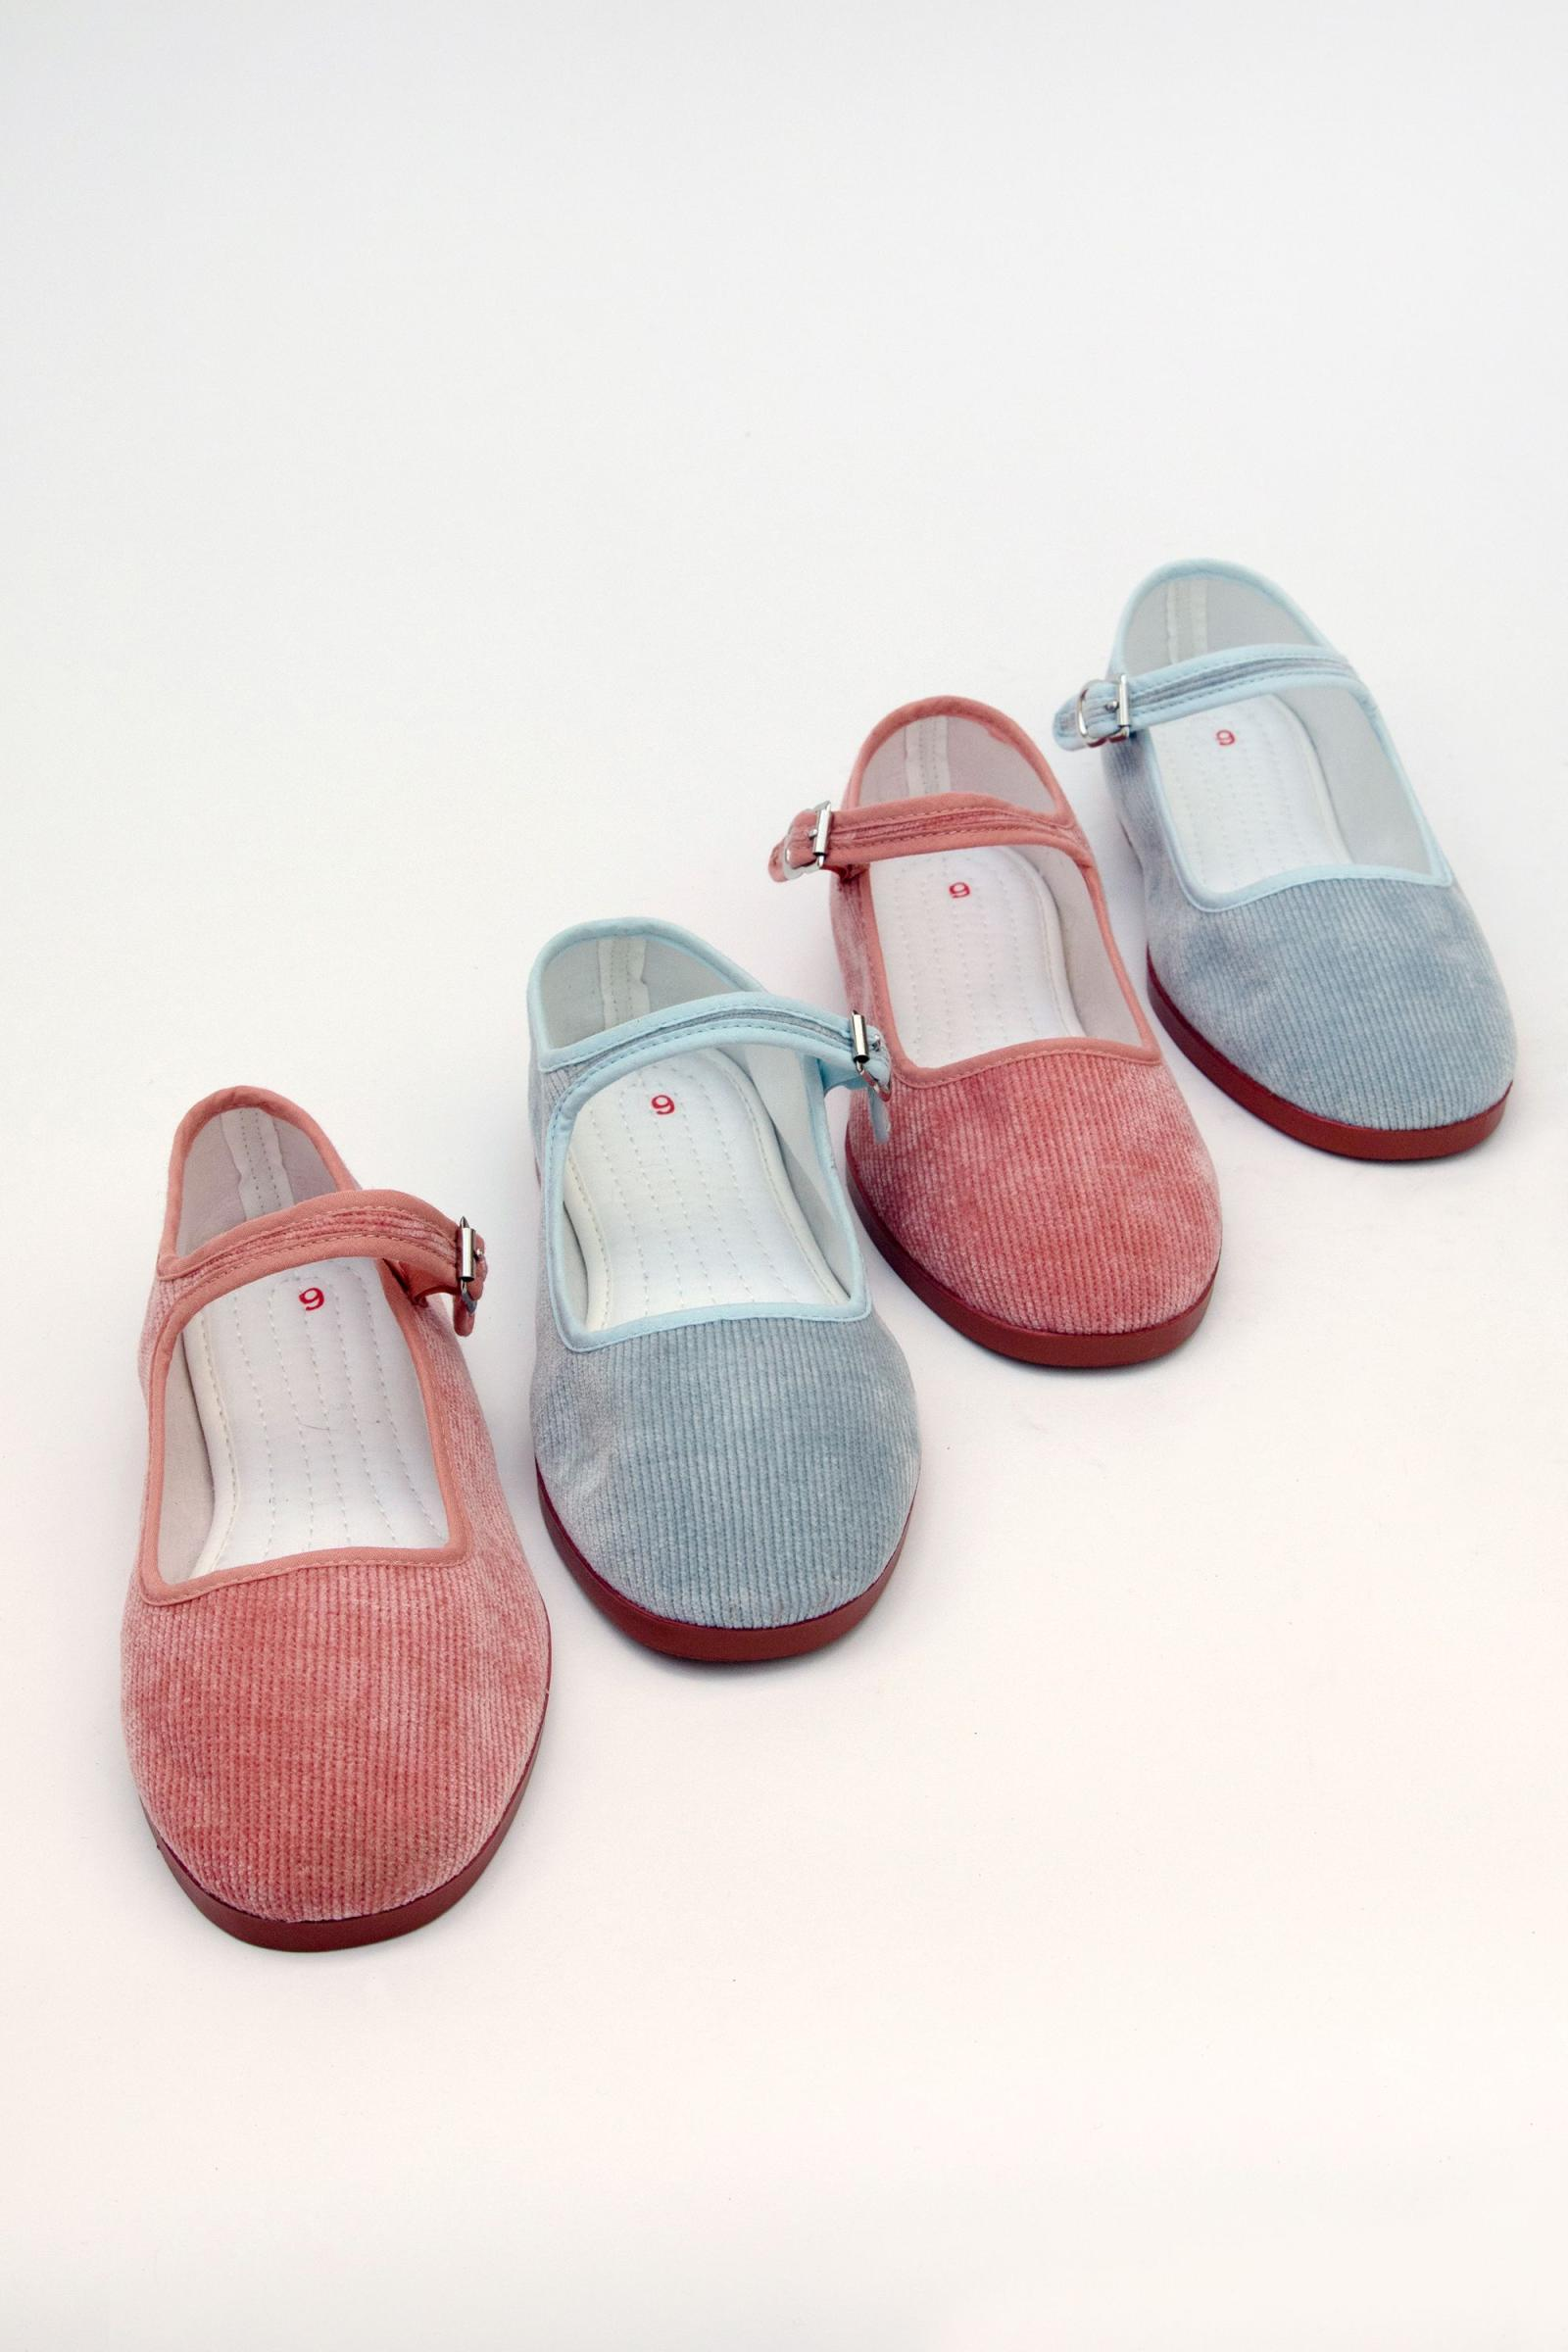 Uo Corduroy Mary Jane Urban Outfitters New Zealand